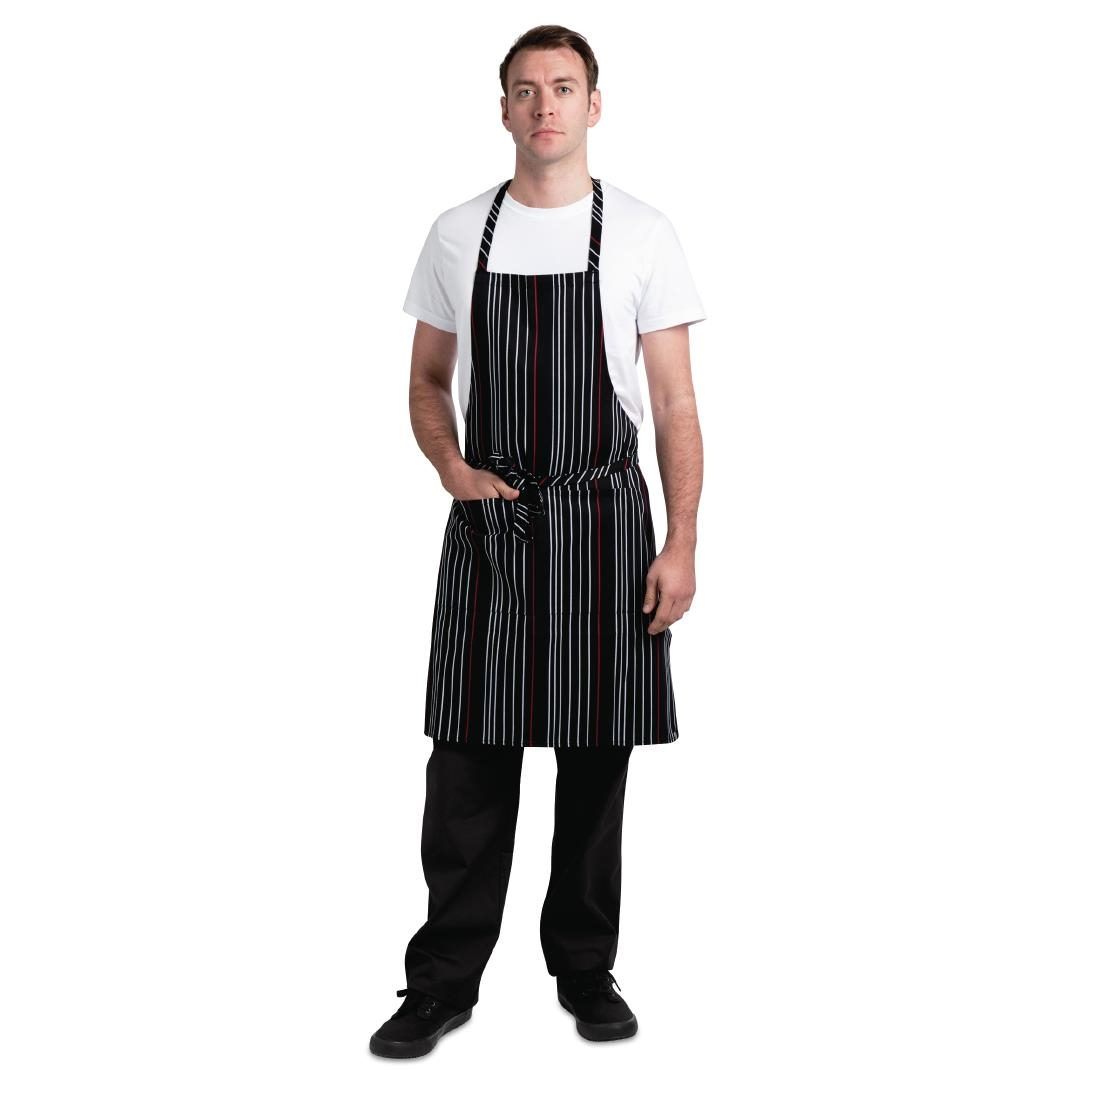 Image of Chef Works Bib Apron Black Red and White Striped